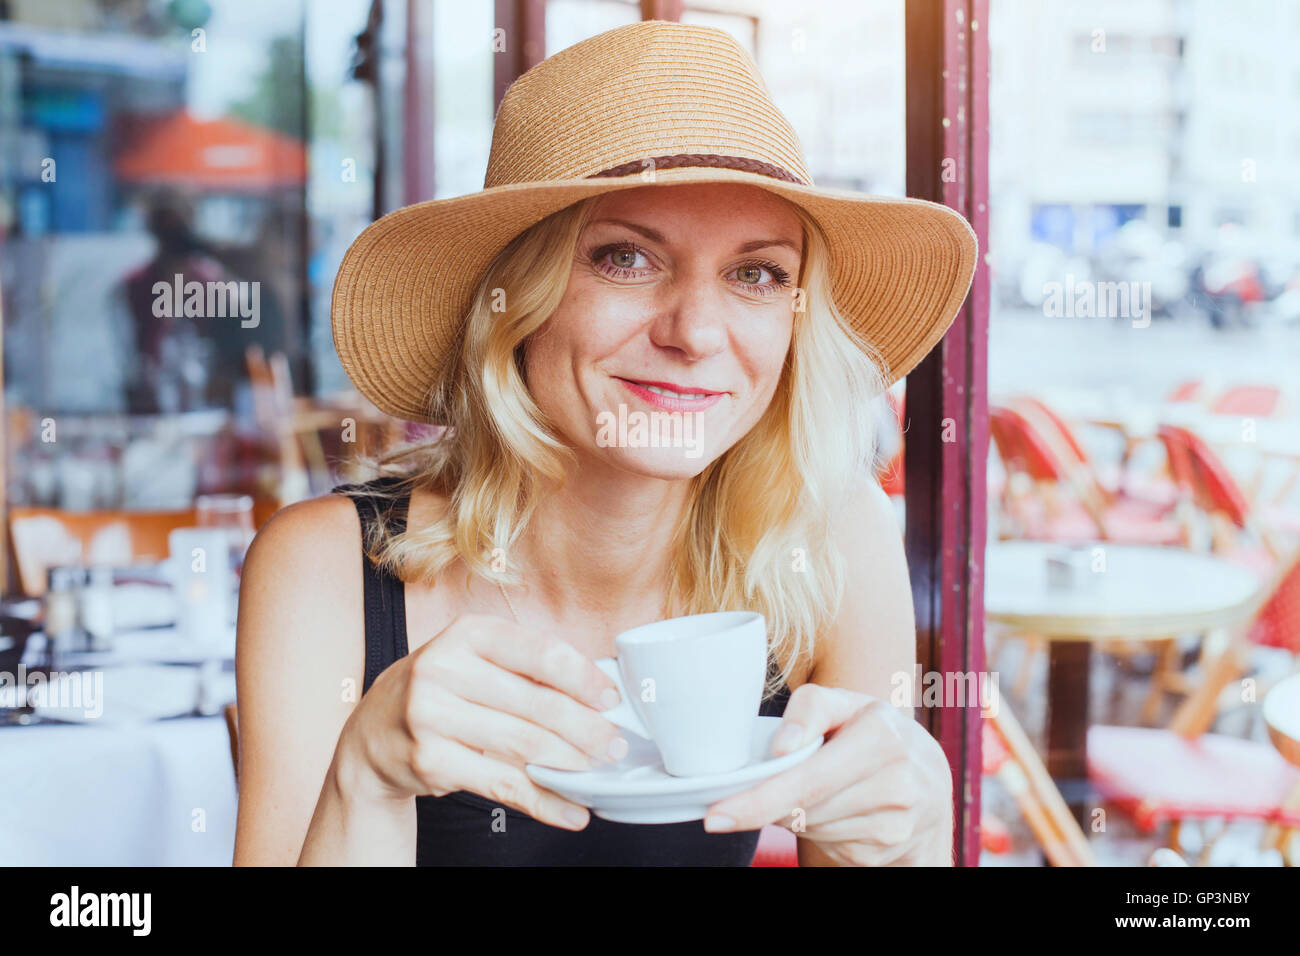 portrait of fashion beautiful middle aged woman in cafe with cup of coffee, happy, smiling and looking at the camera - Stock Image